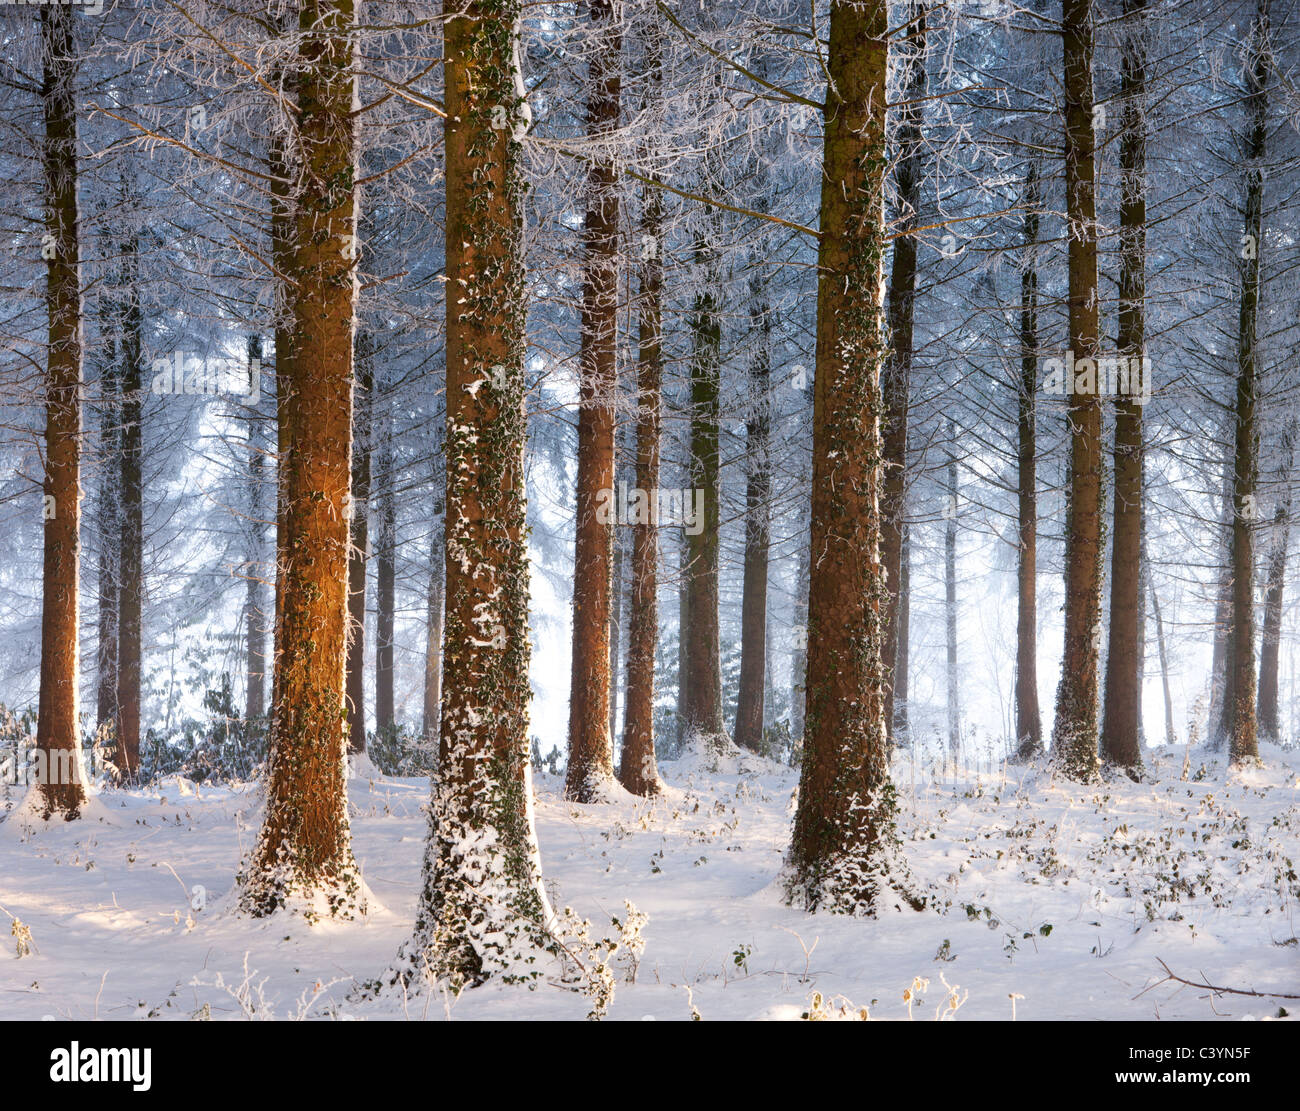 Snow covered pine woodland, Morchard Wood, Morchard Bishop, Devon, England. Winter (December) 2010. - Stock Image